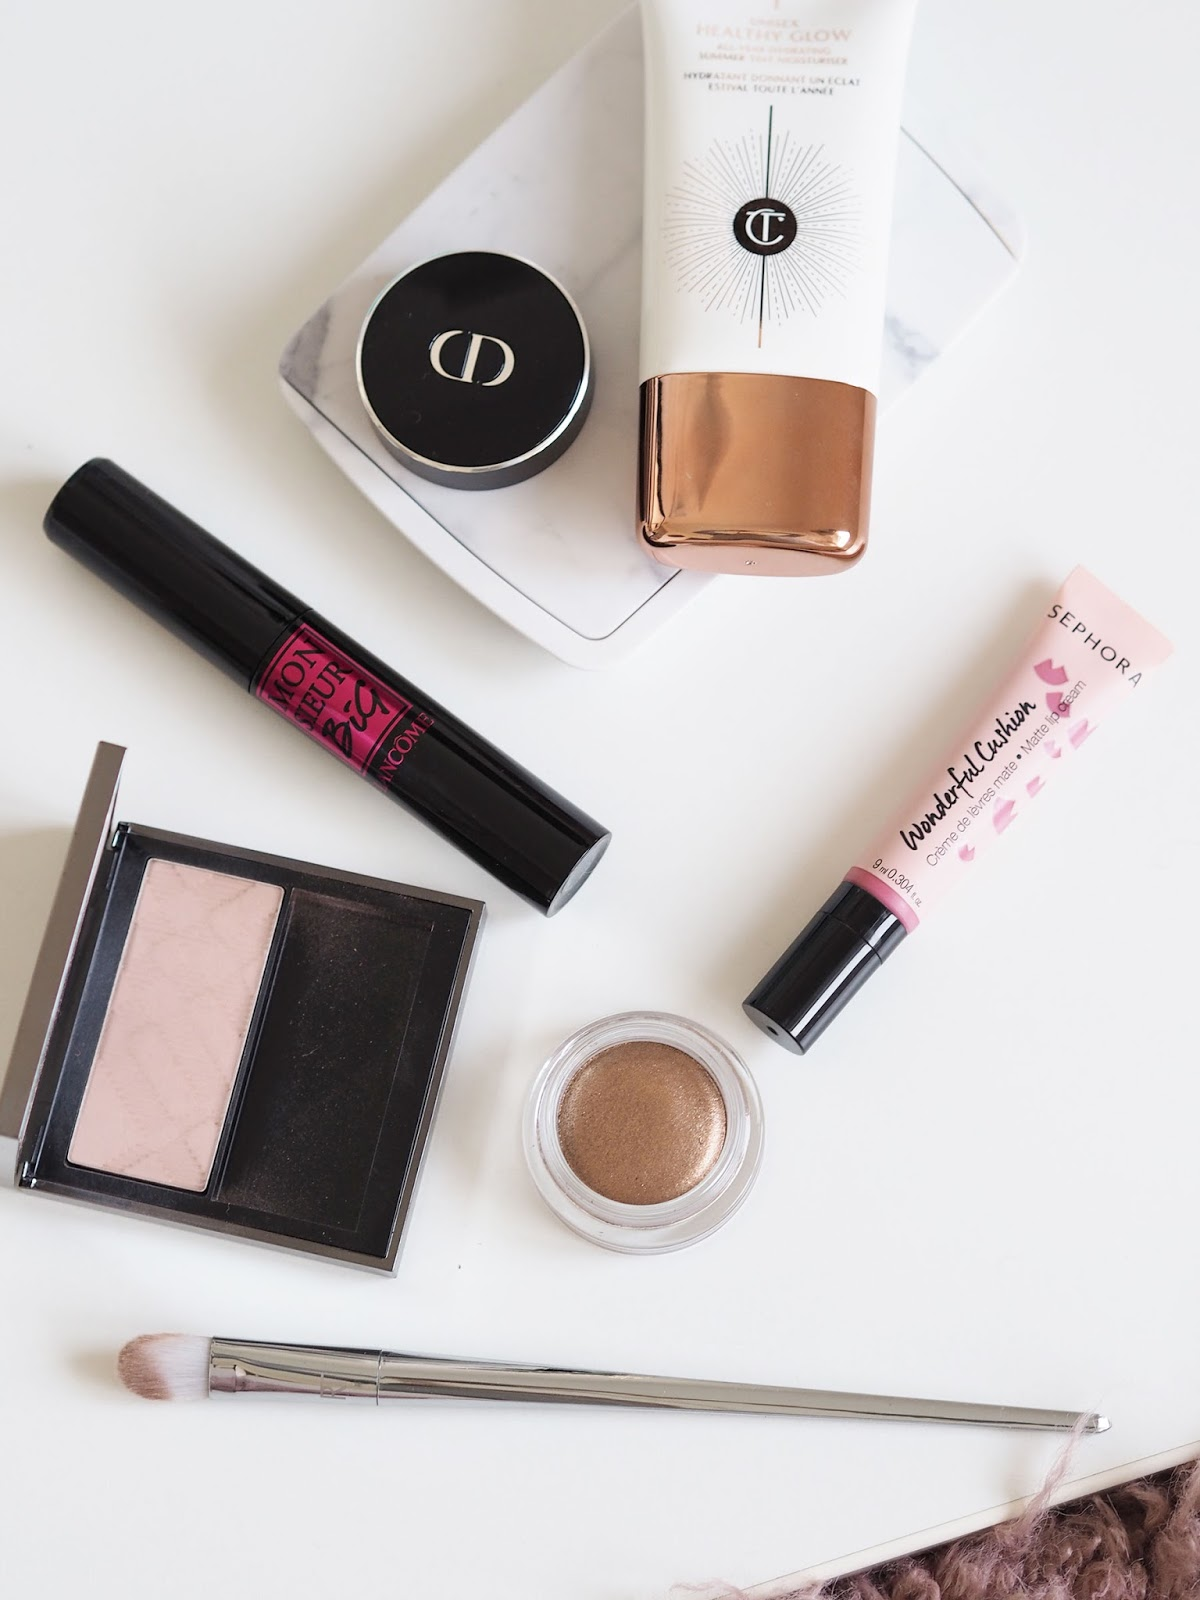 The Five Product Makeup look